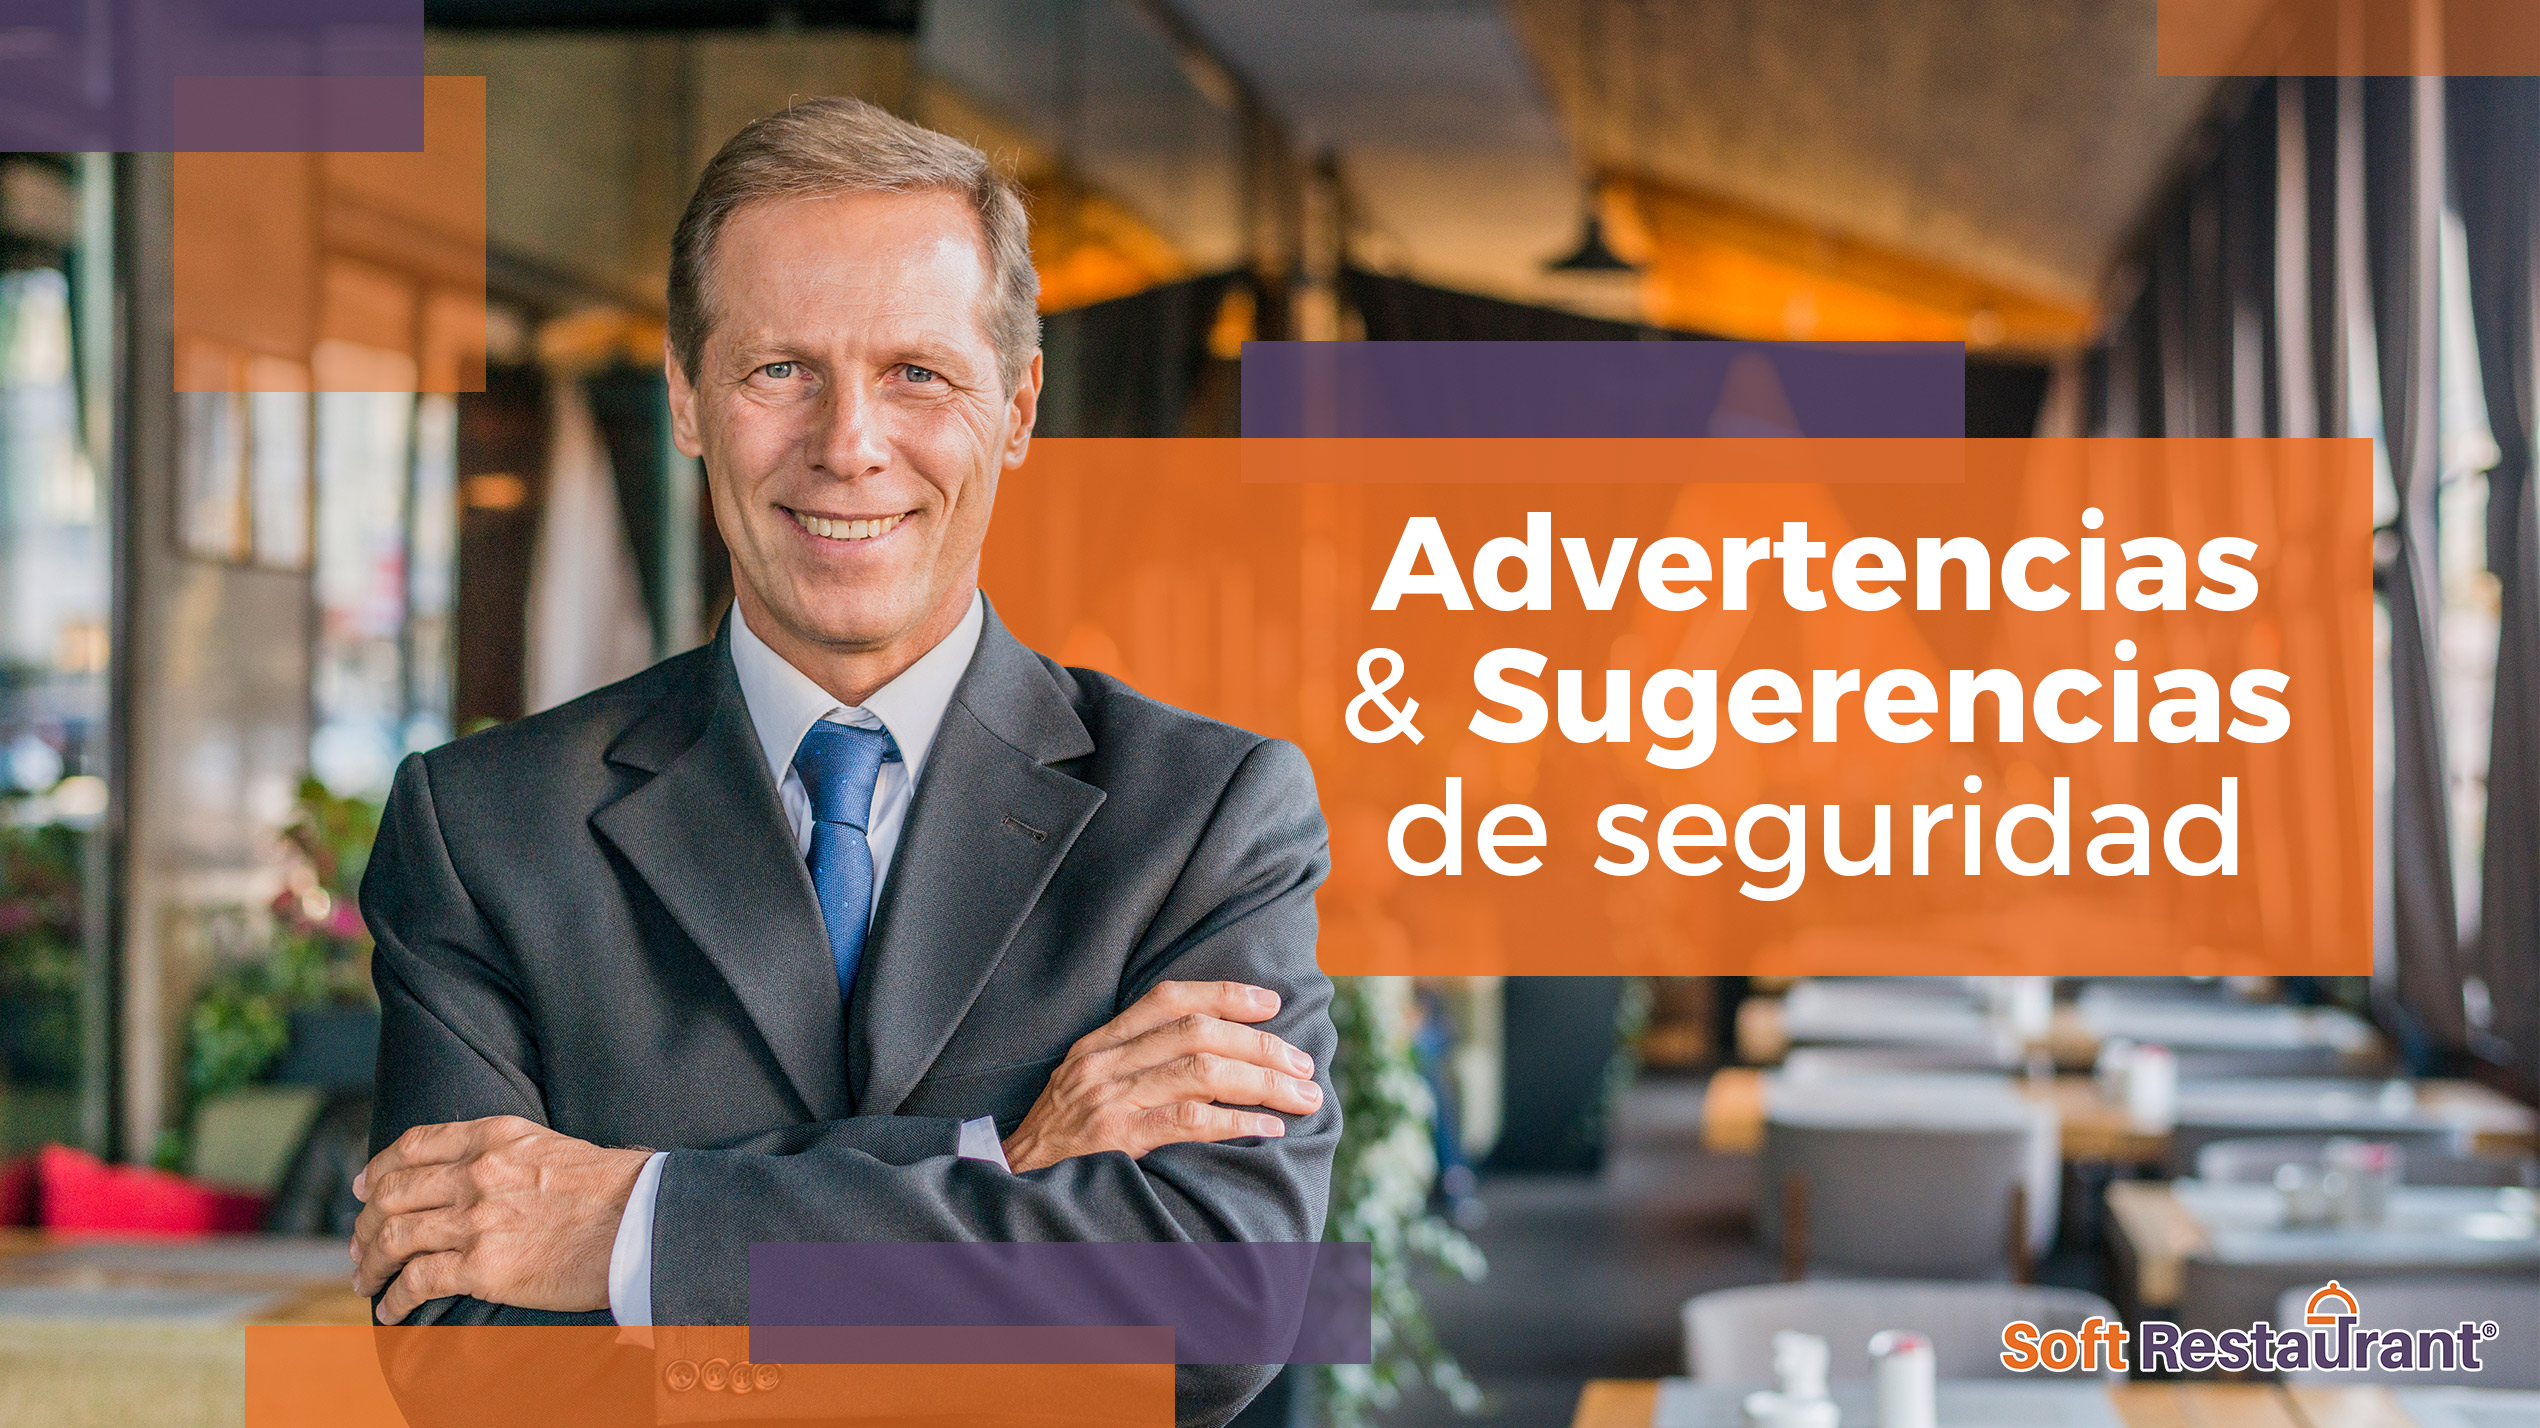 ADVERTENCIAS-Y-SUGERENCIAS-SR_2019_1.jpg